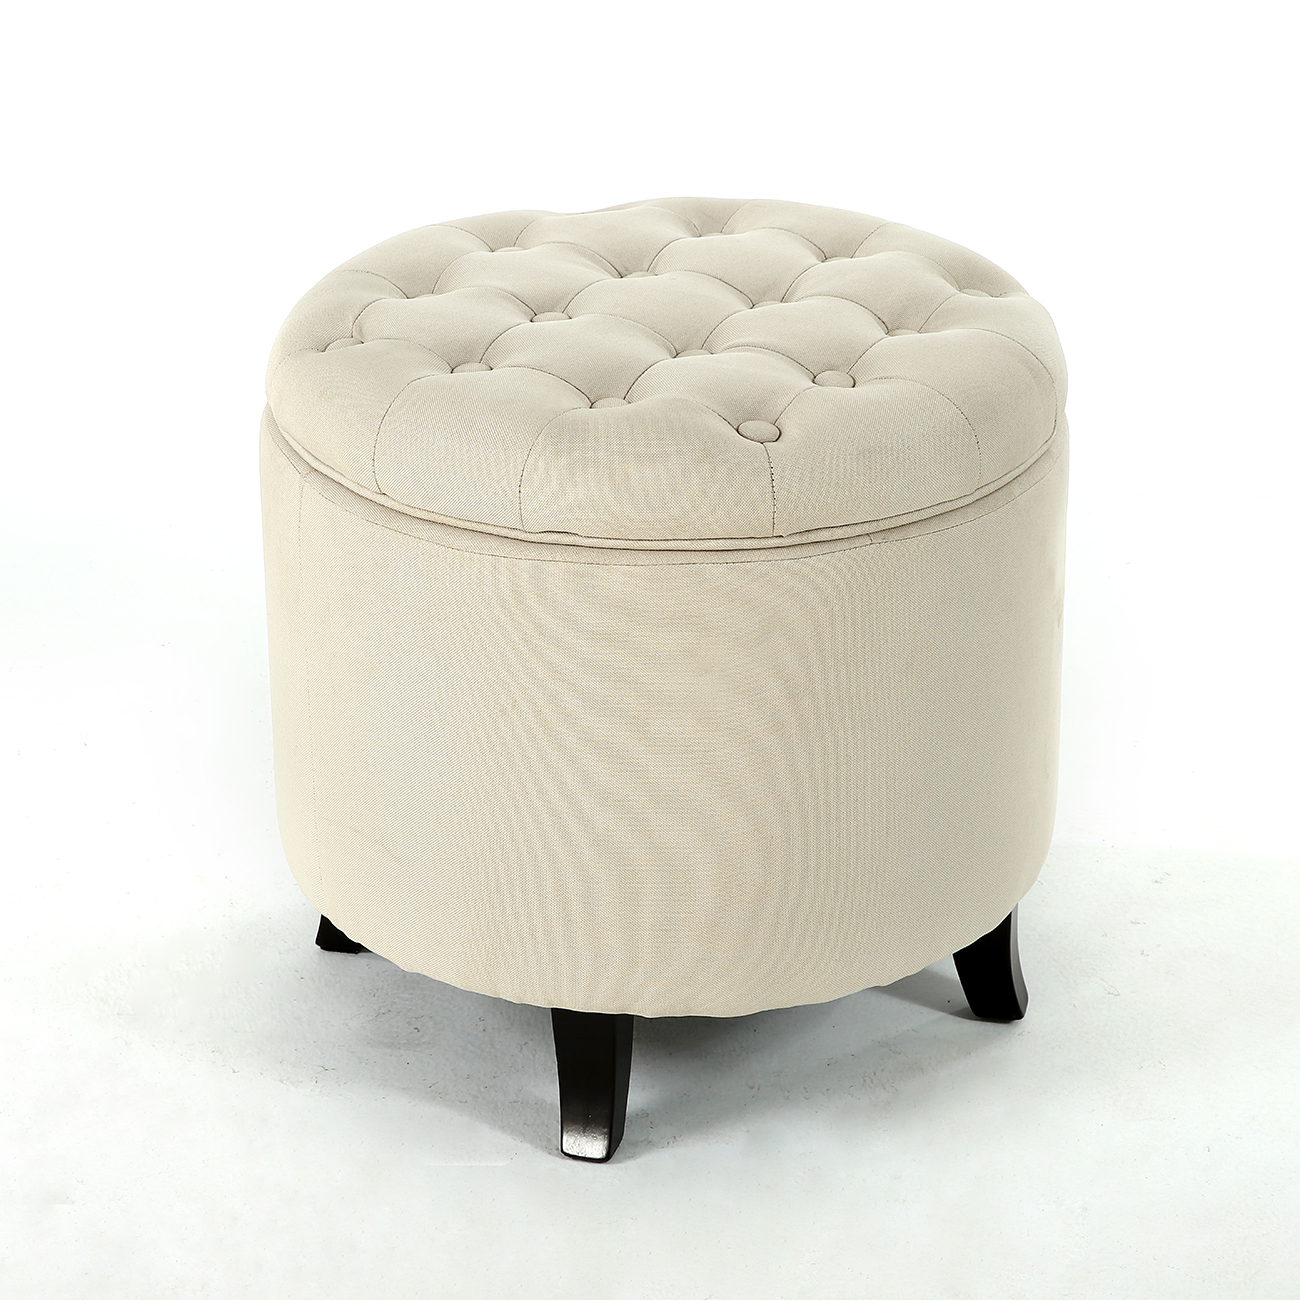 Coffee Table Footrest Storage: Elegant Beige Storage Ottoman Coffee Table W/ Button